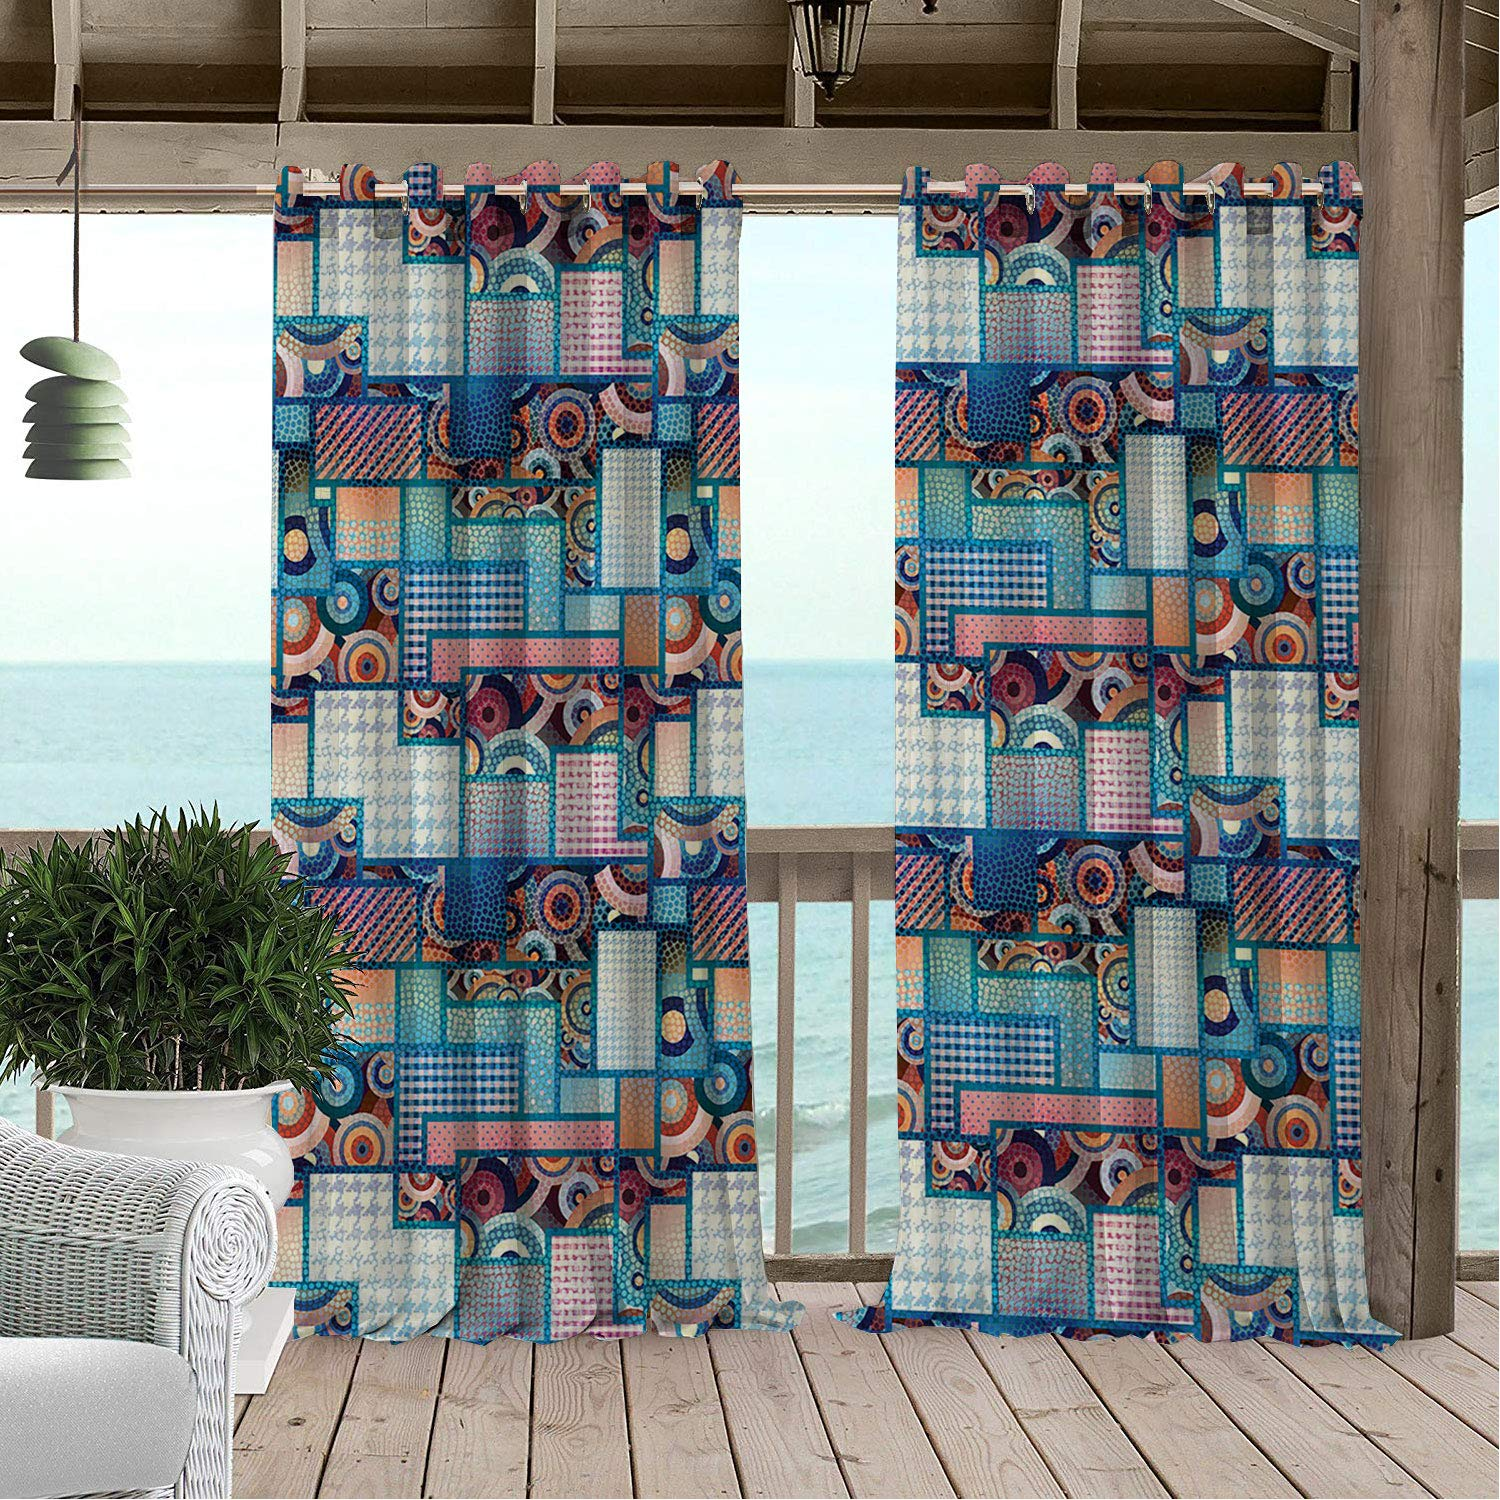 Linhomedecor Patio Waterproof Curtain Patchwork Abstract Pattern Polka Dots Differently d Rectangles and Bulls Eye Motif Multicolor doorways Grommet Printed Curtains 84 by 84 inch by Linhomedecor